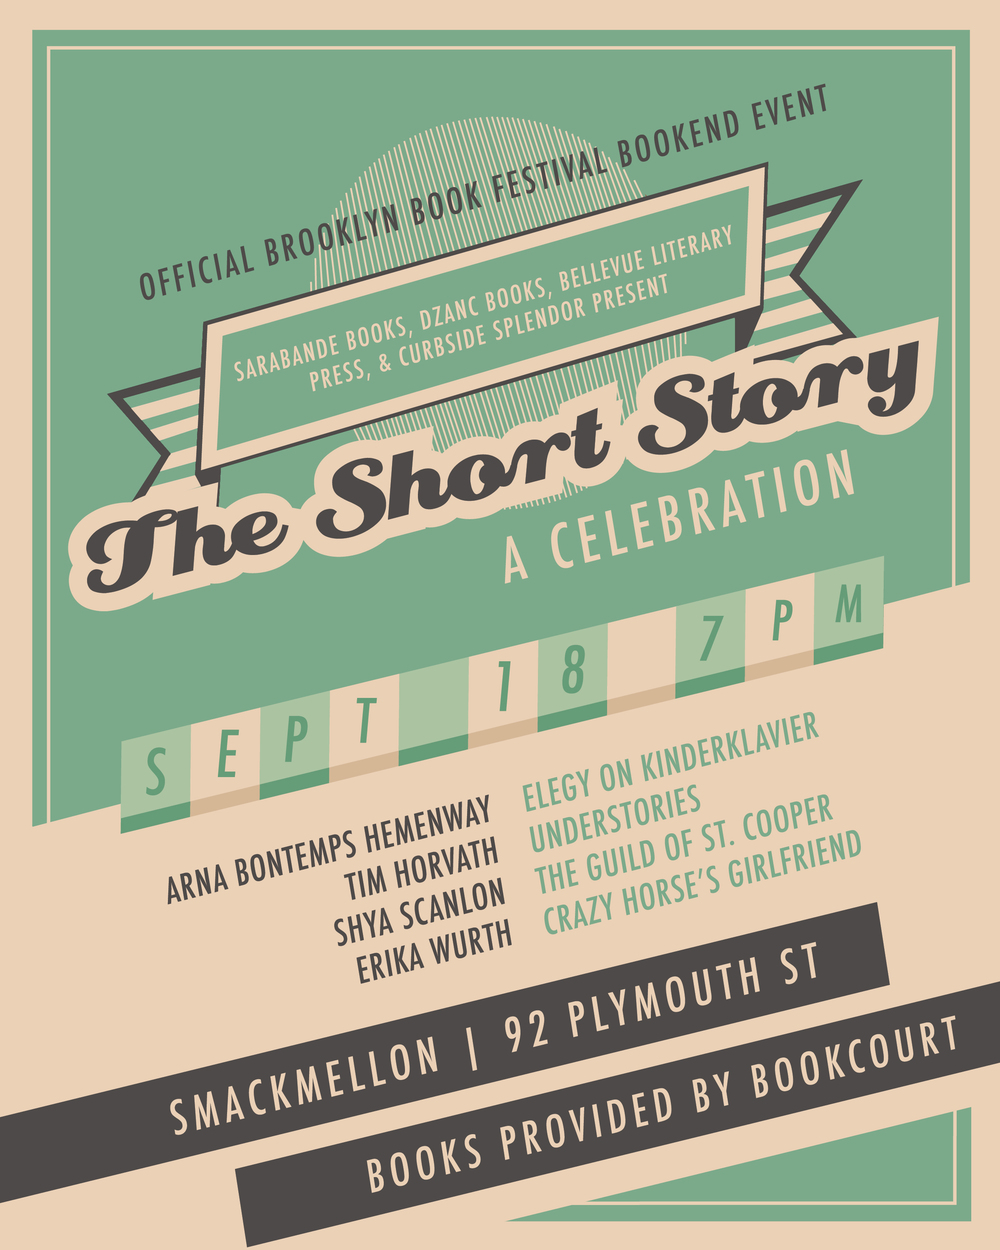 Brooklyn Book Fest Event Poster